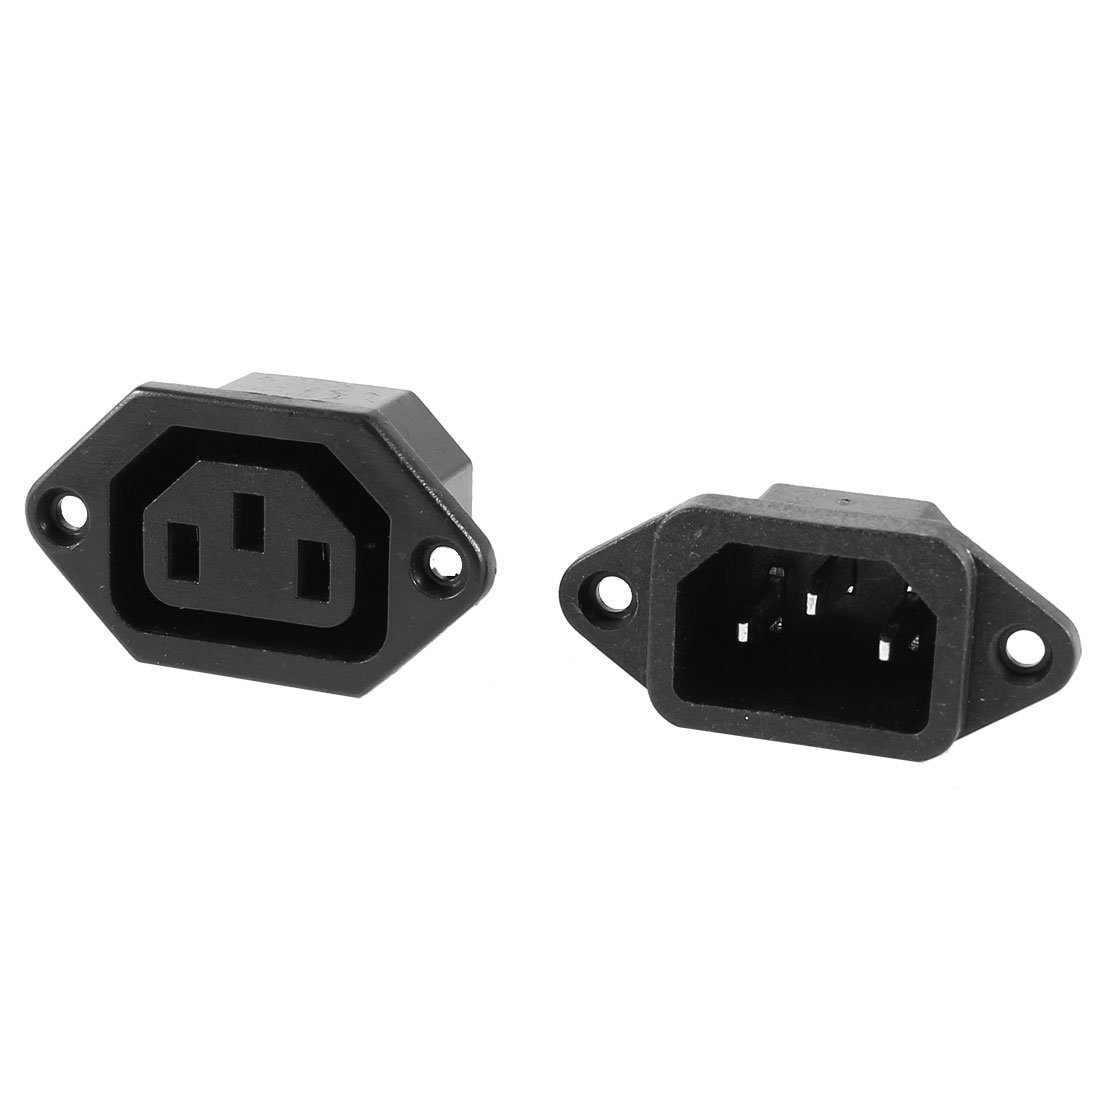 10A 4mm Banana Panel Mounting Socket Black Receptacle Console Mount Pack of 3